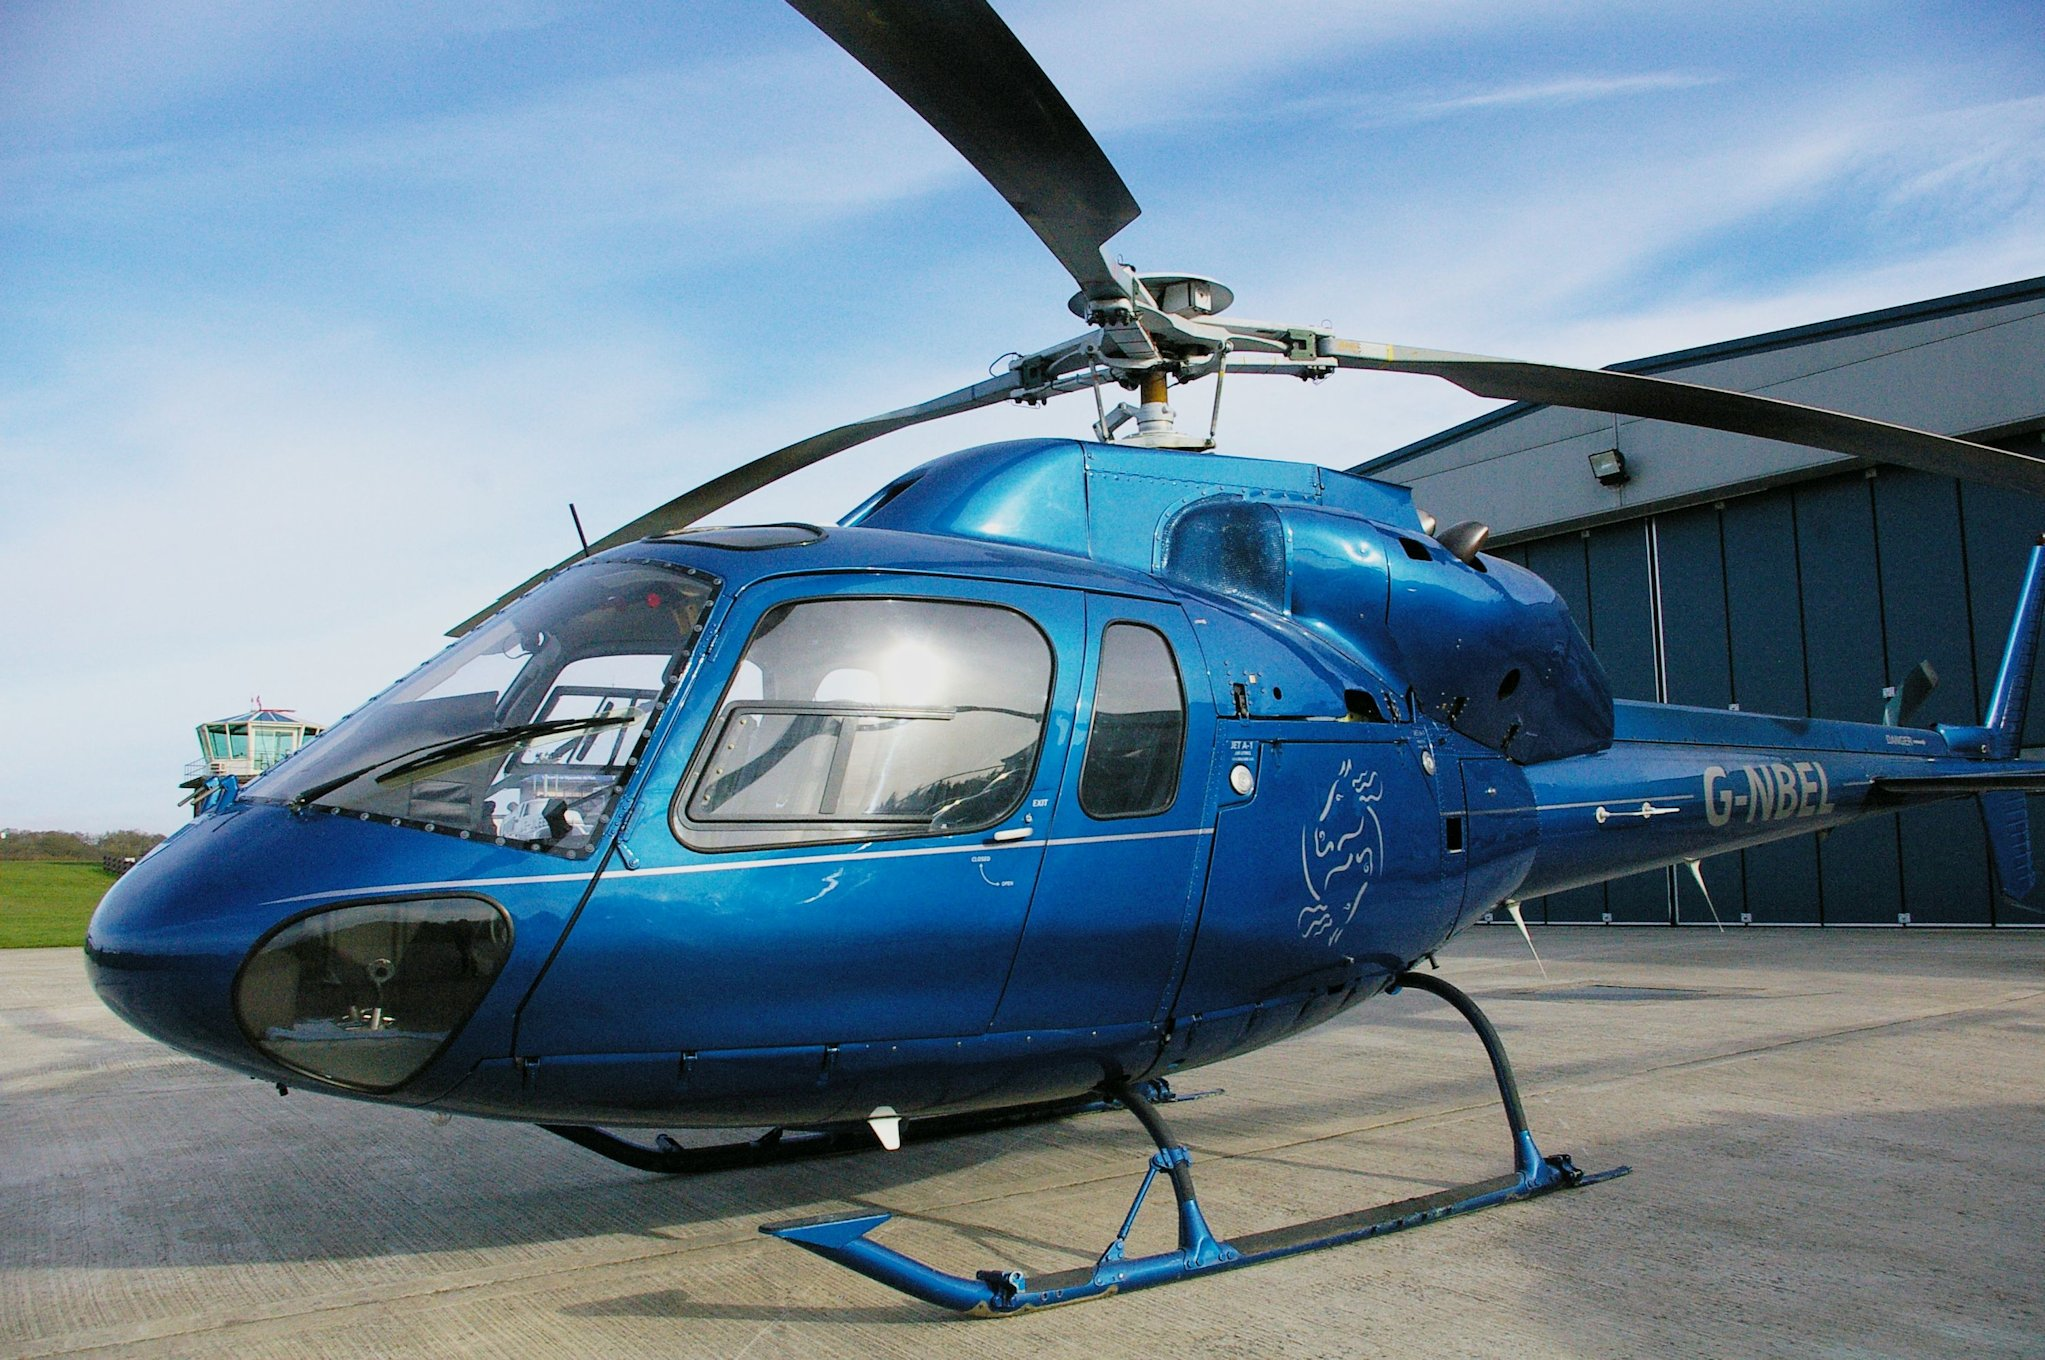 r22 for sale helicopter with Premium London Helicopter Tour For 5 on Cessna 182 1969 together with New Tech further File Robinson r22 g Cbxn arp additionally Robinson R22 Beta Ii 2003 2 also Airbus H130 Eurocopter Ec130.